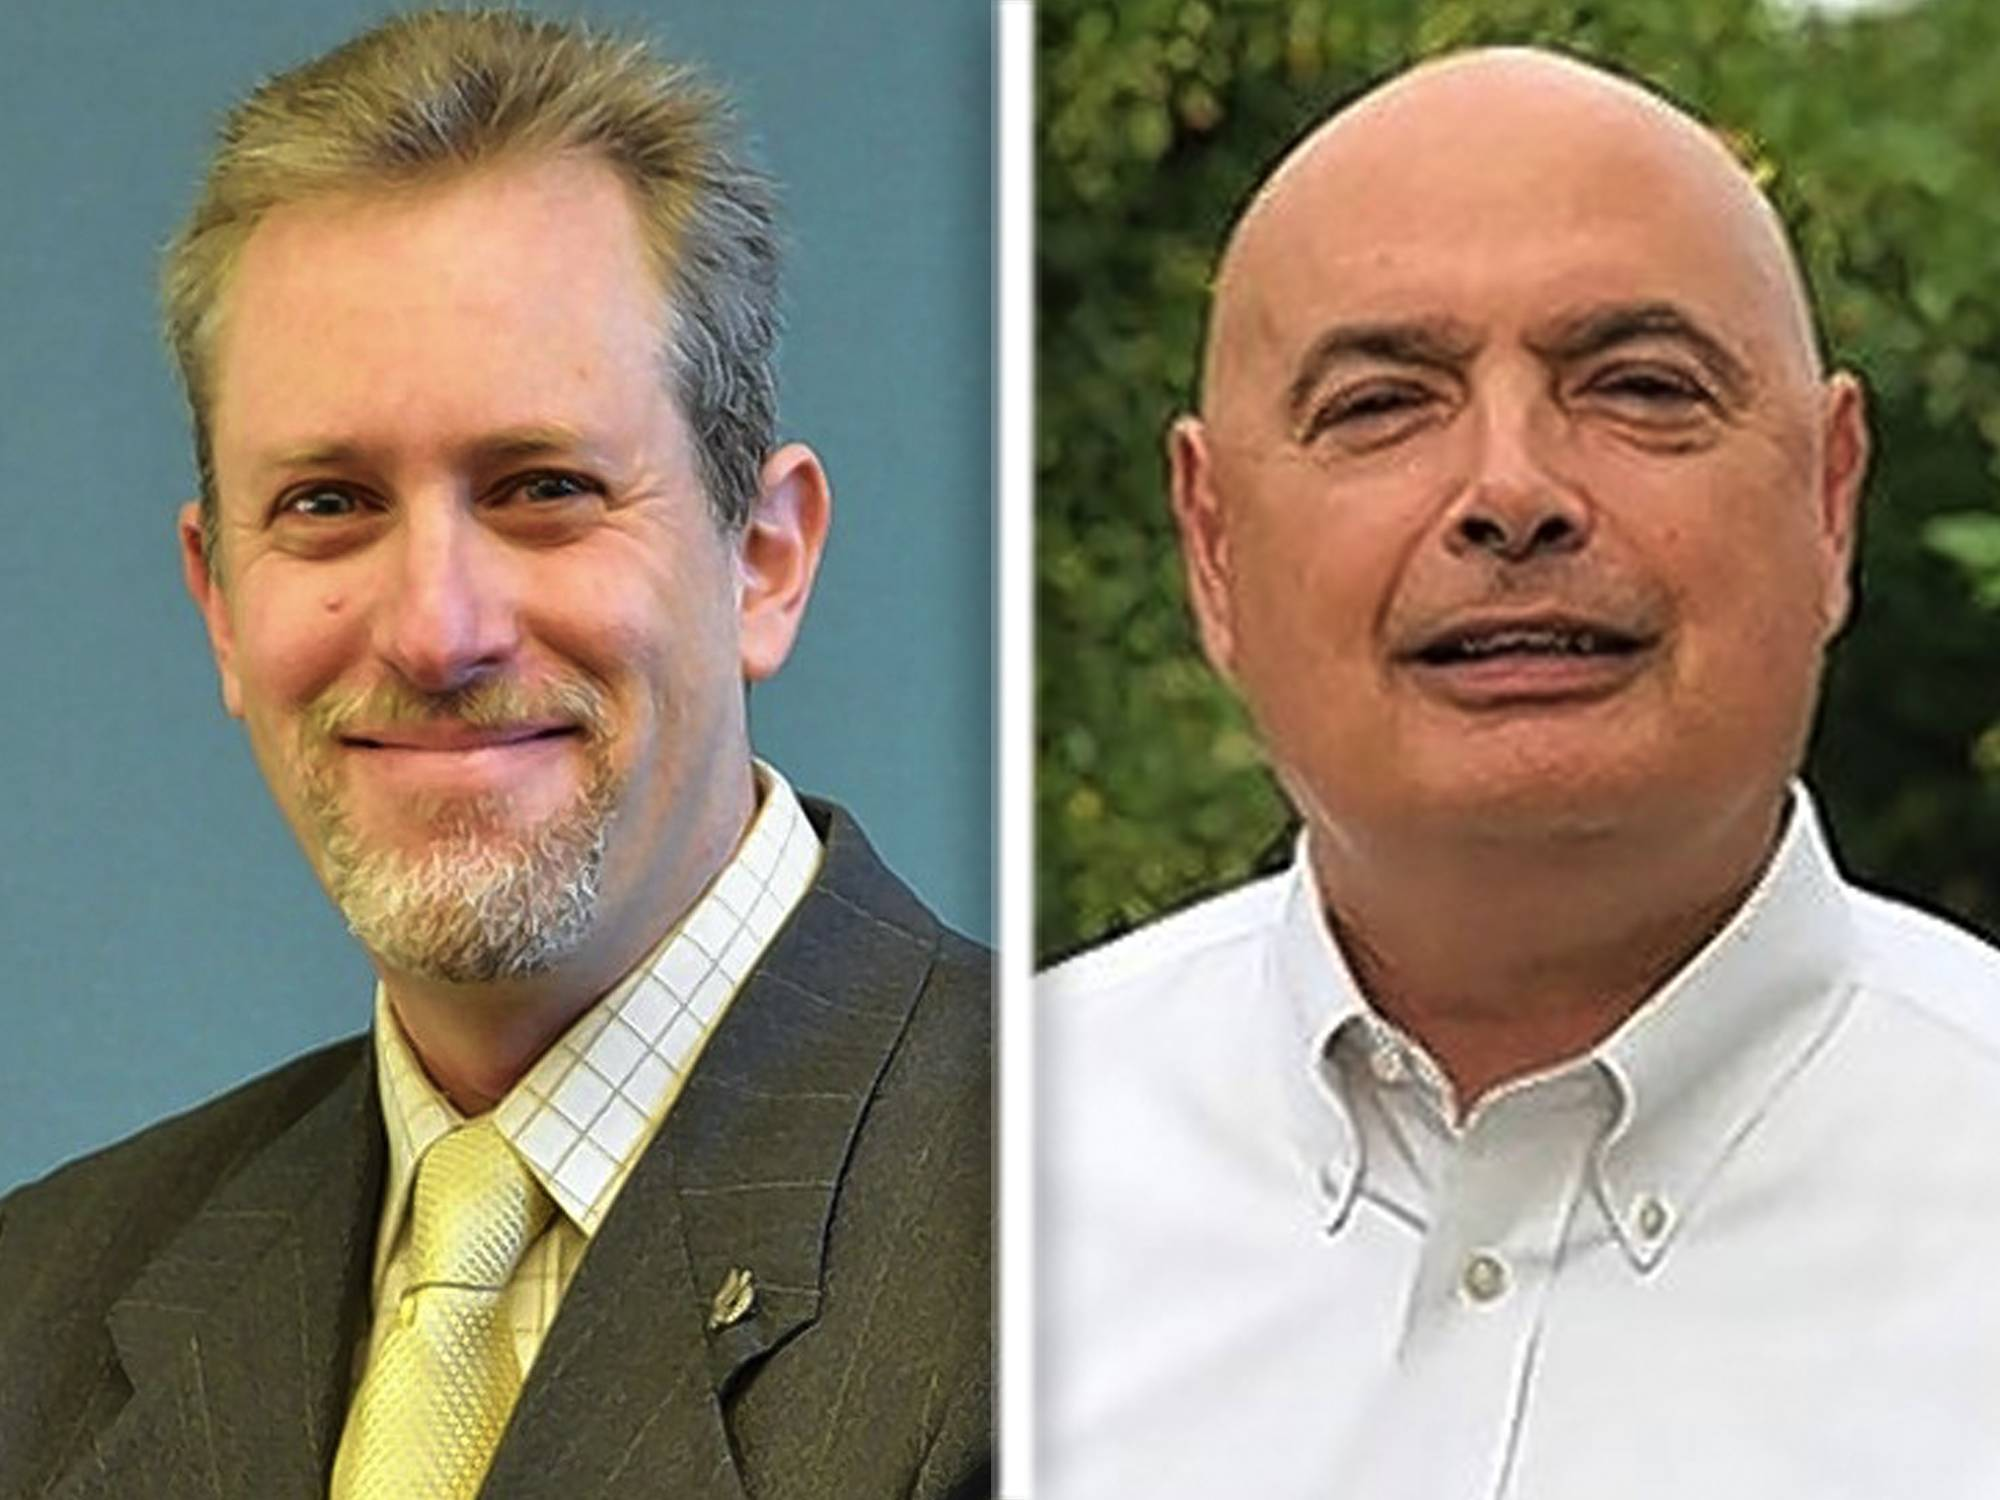 Lindenhurst mayoral candidates stressing economic development